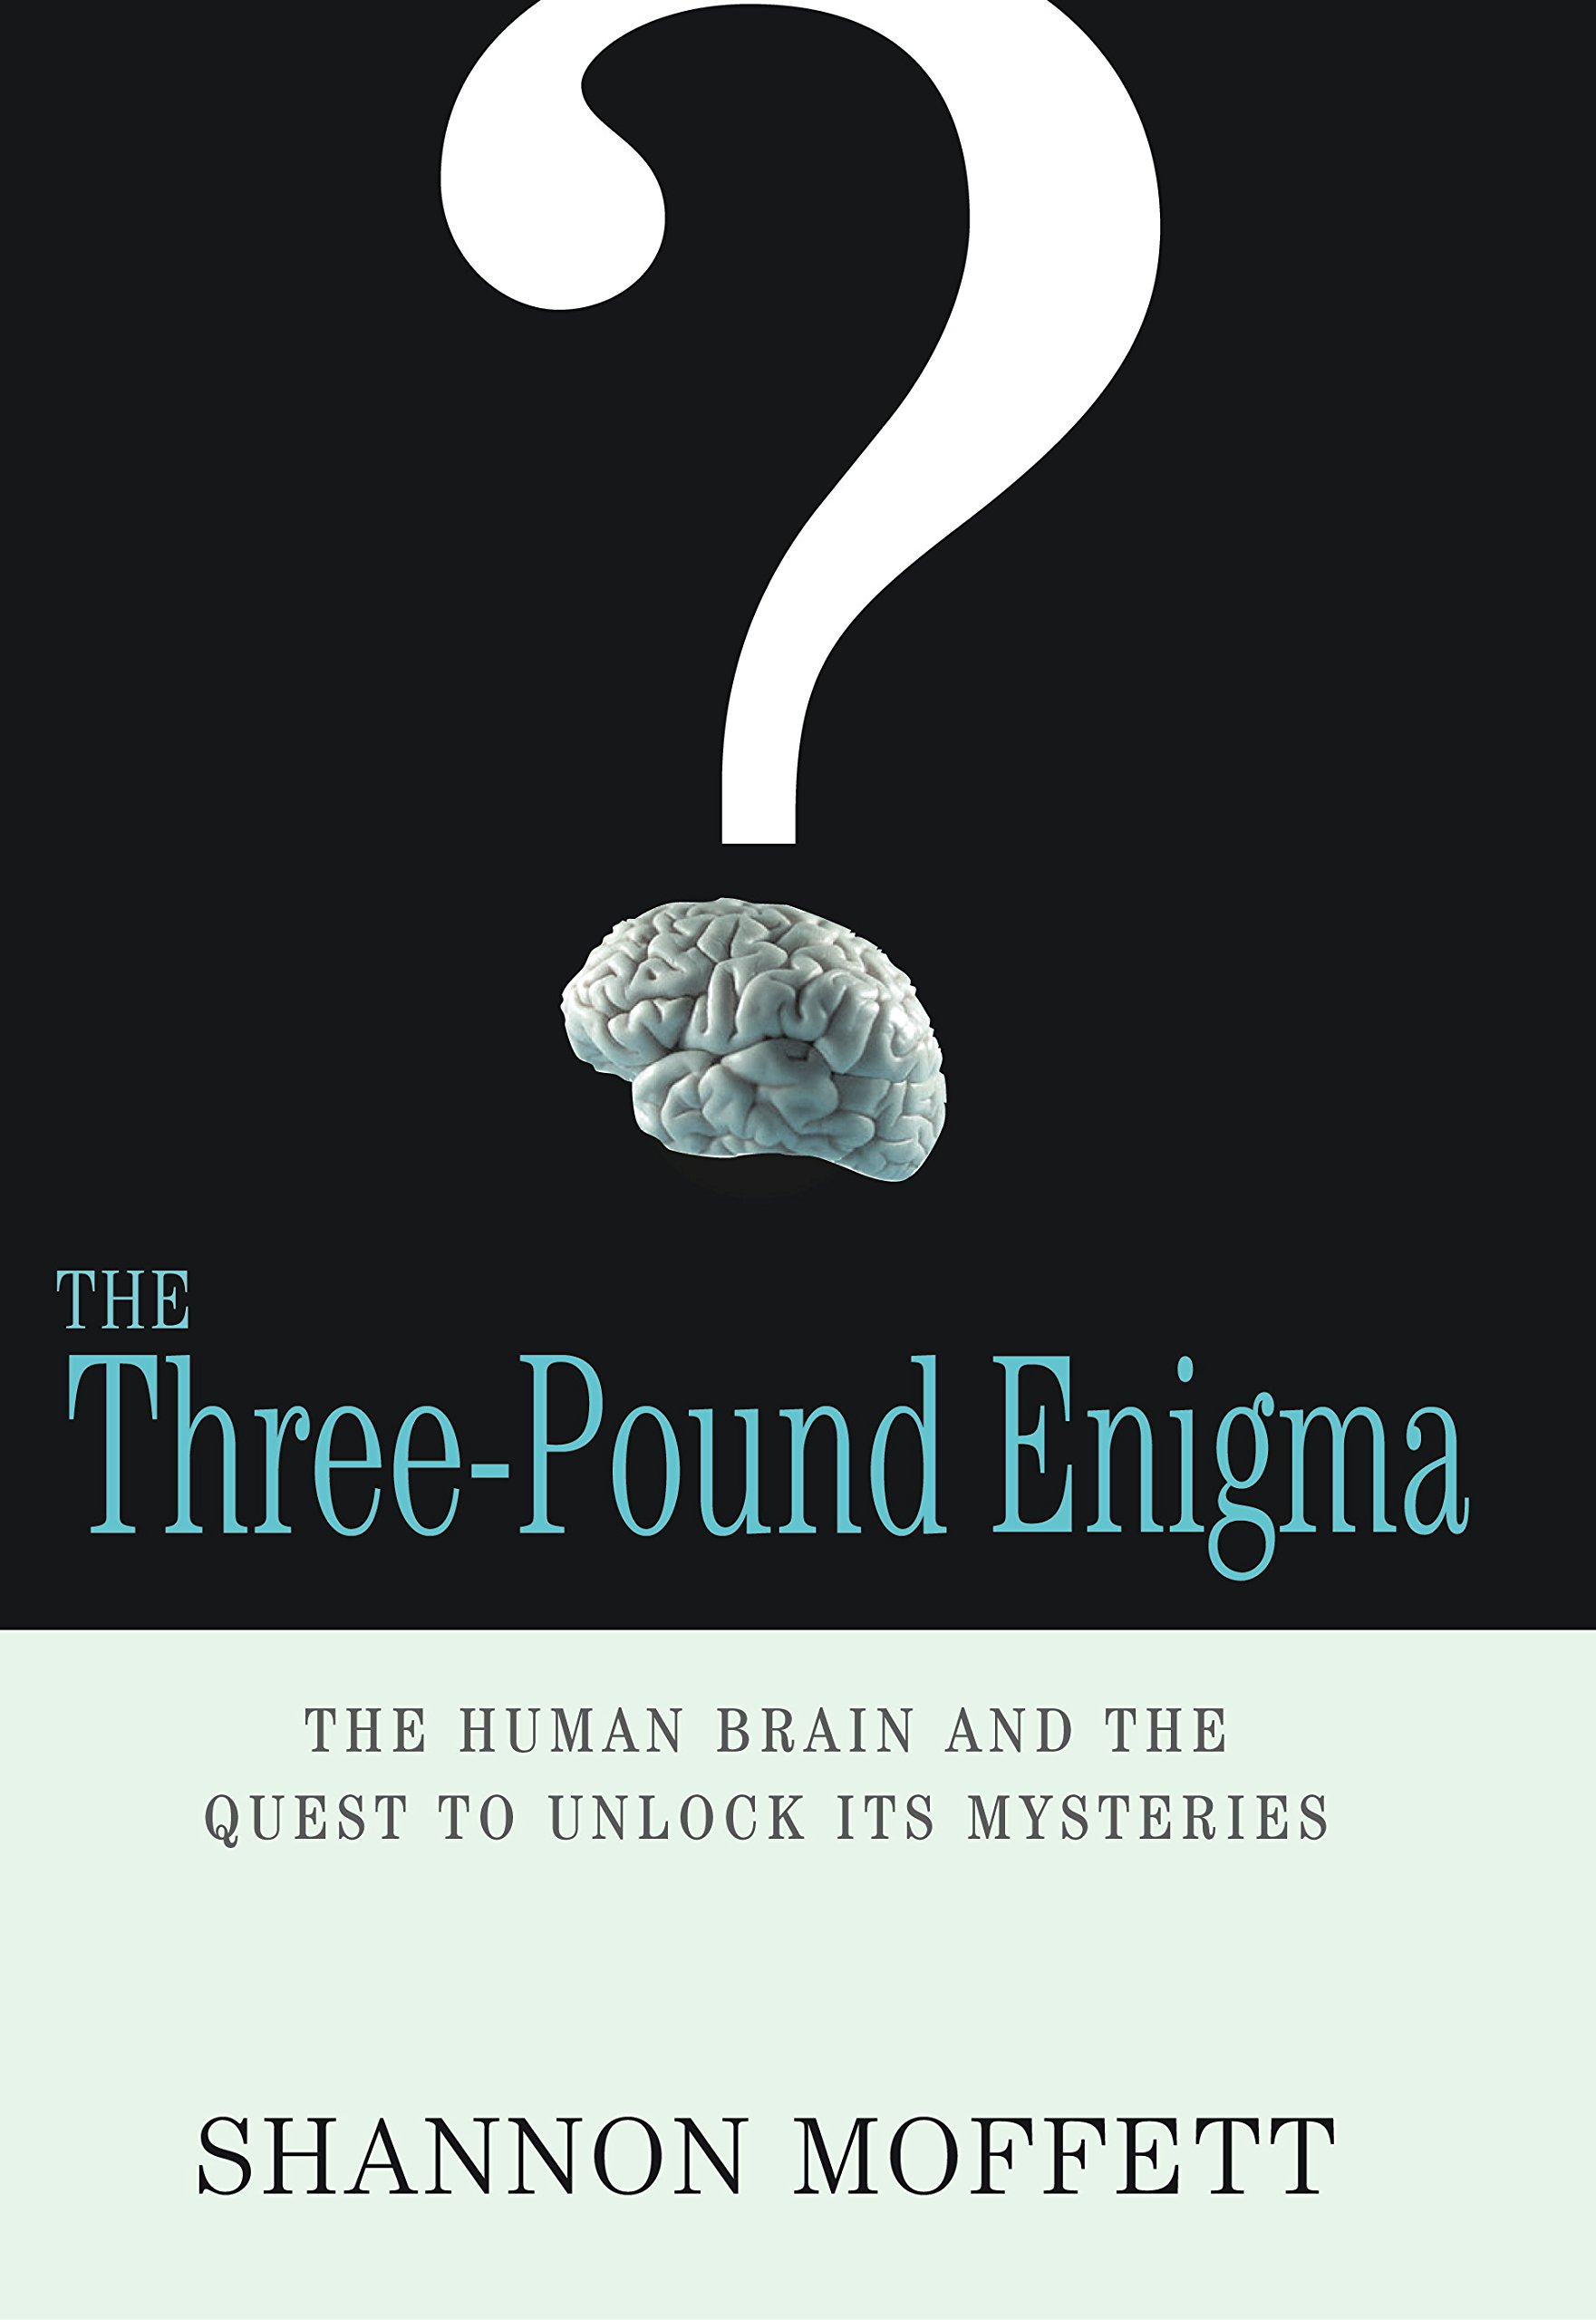 The Three Pound Enigma: The Human Brain And The Quest To Unlock Its  Mysteries: Shannon Moffett: 9781565124233: Amazon.com: Books